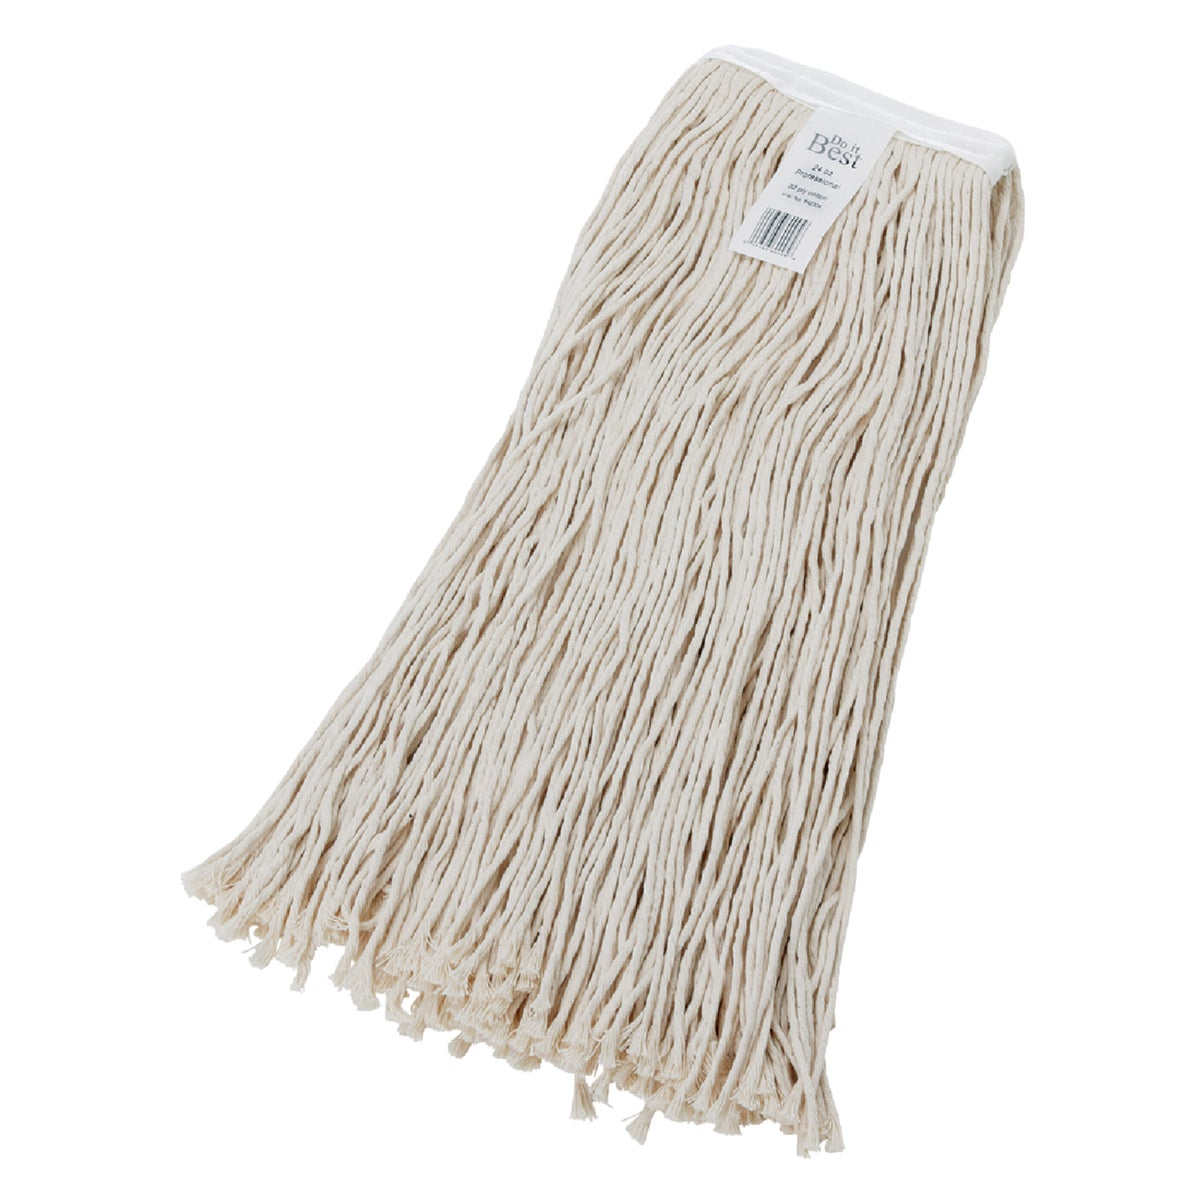 24OZ WORKHORS COTTON MOP - 642304 by Nexstep Commercial